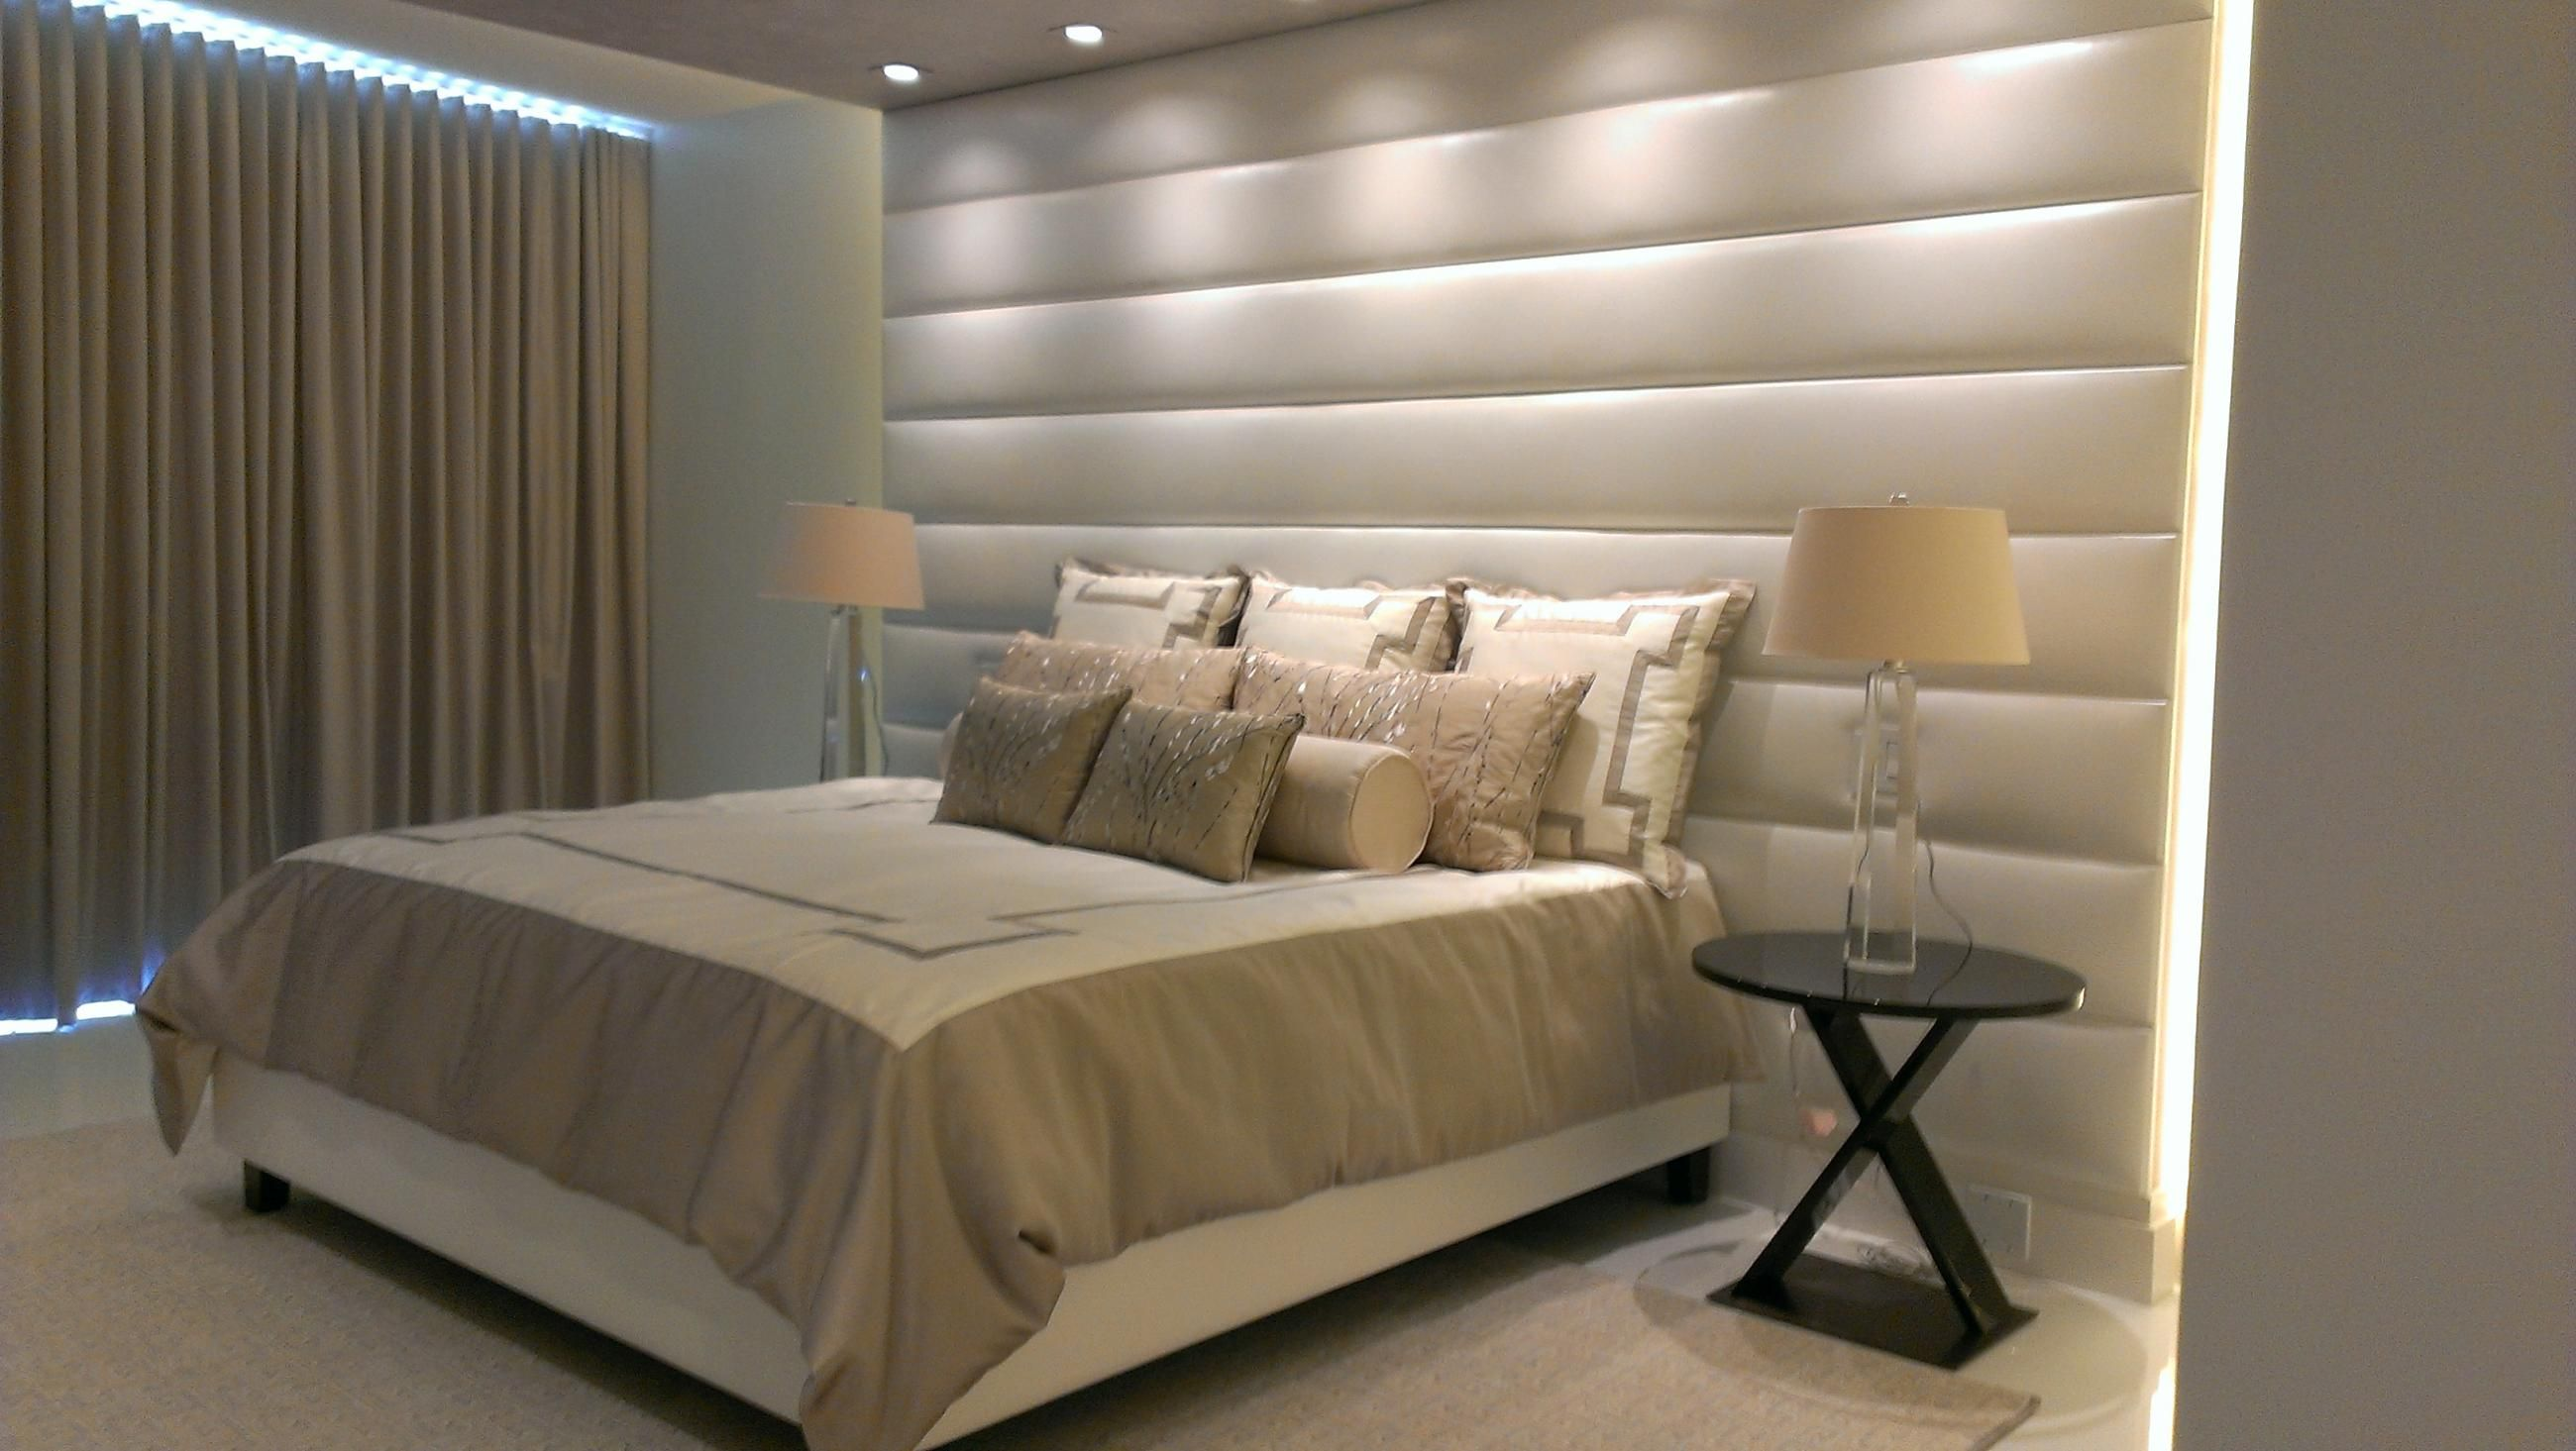 Wall Mounted Upholstered Headboard Panels With Contemporary Interior Design For Bedroom Upholstered Wall Panels Upholstered Walls Headboard Wall